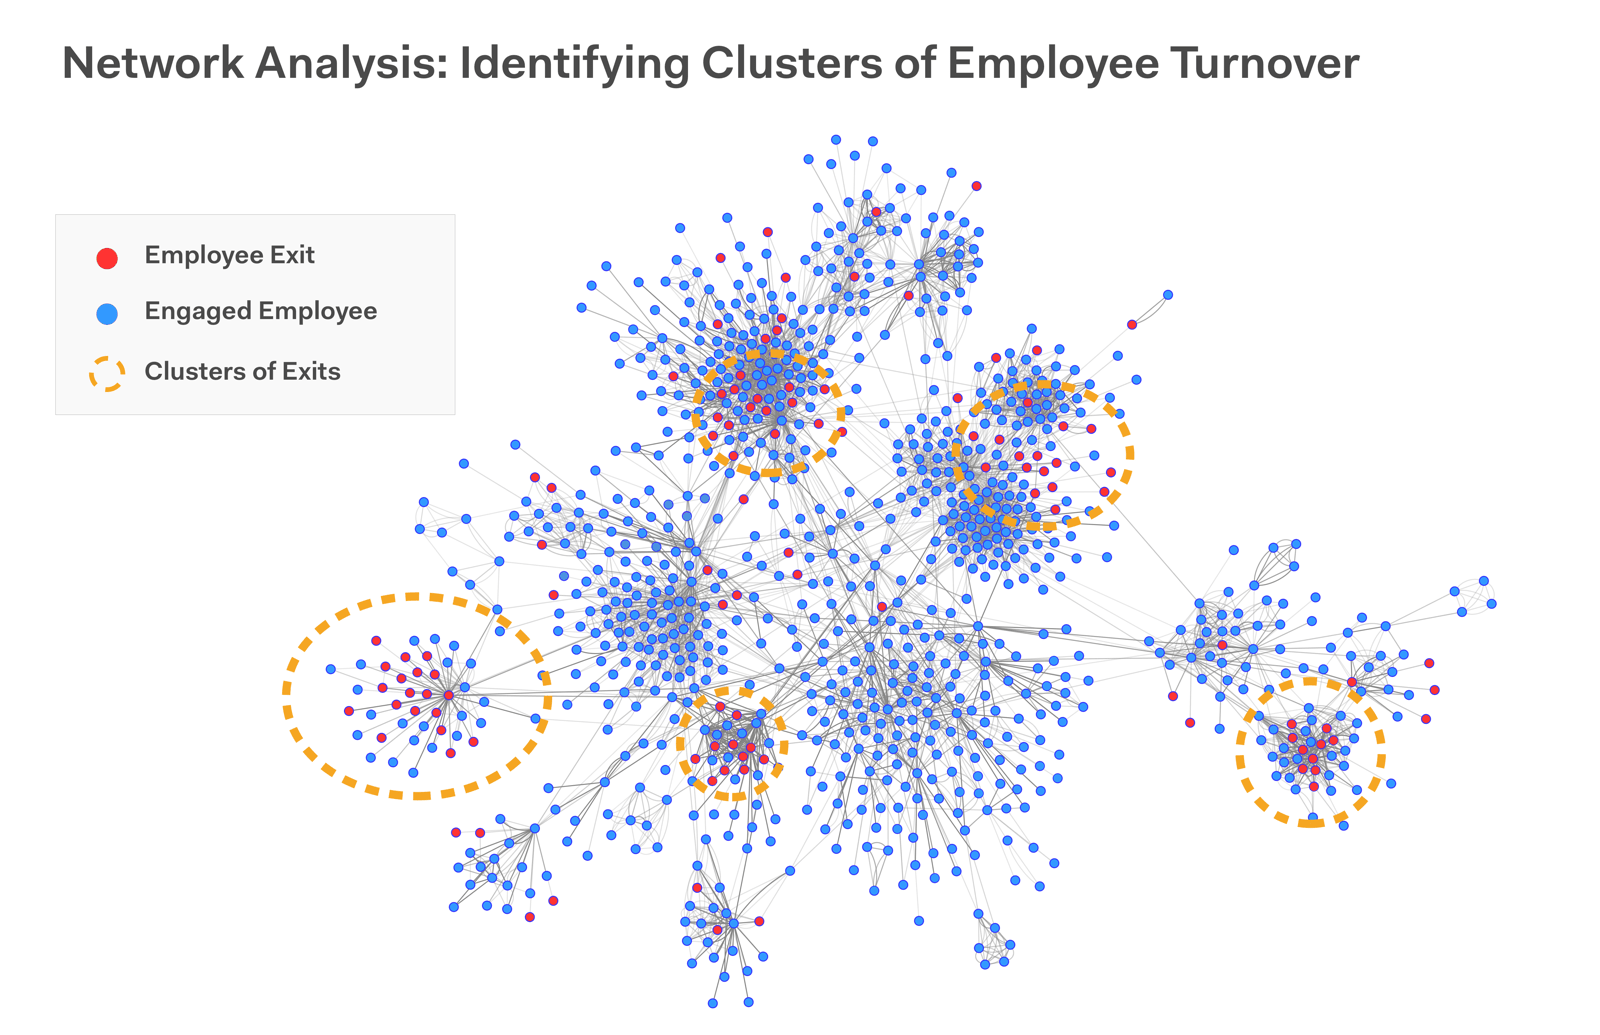 FIG 4: Network analysis showing clusters of turnover (Source: Philip Arkcoll)